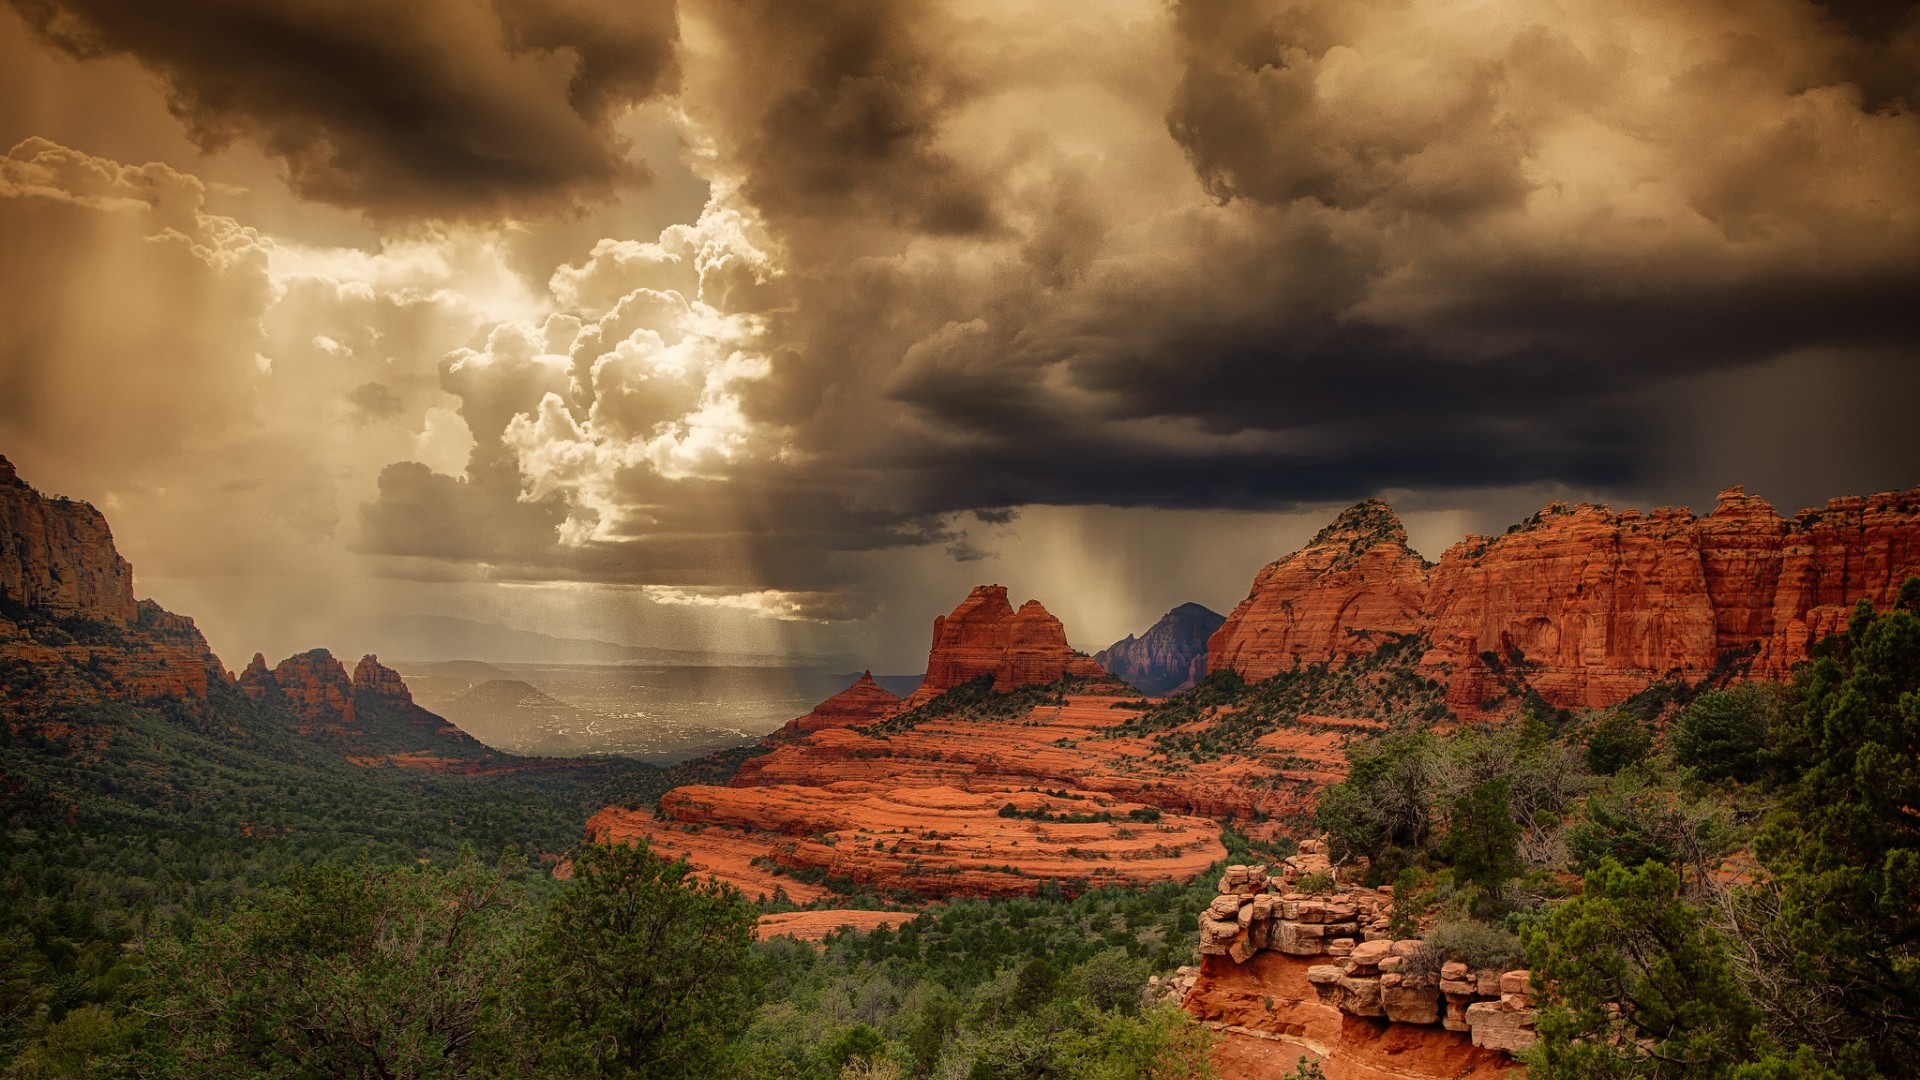 wallpapers Storm clouds over the red rocks of Sedona Arizona USA 1920x1080